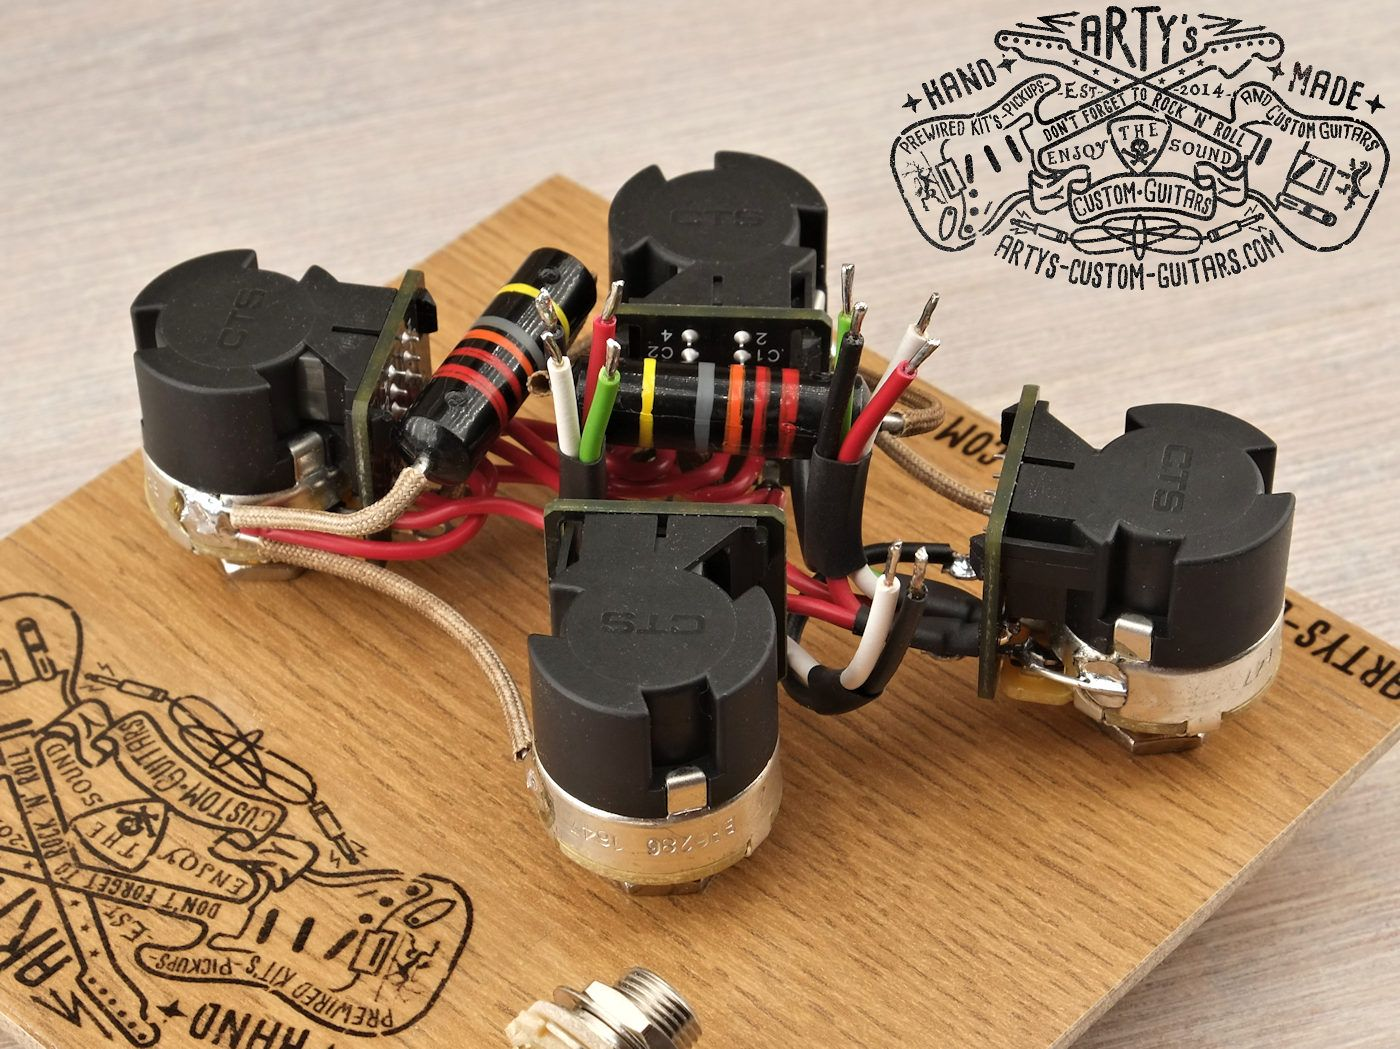 Les Paul Jimmy Page Style Prewired Harness Mit Bumble Bee Custom New Gibson Wiring Artys Guitars